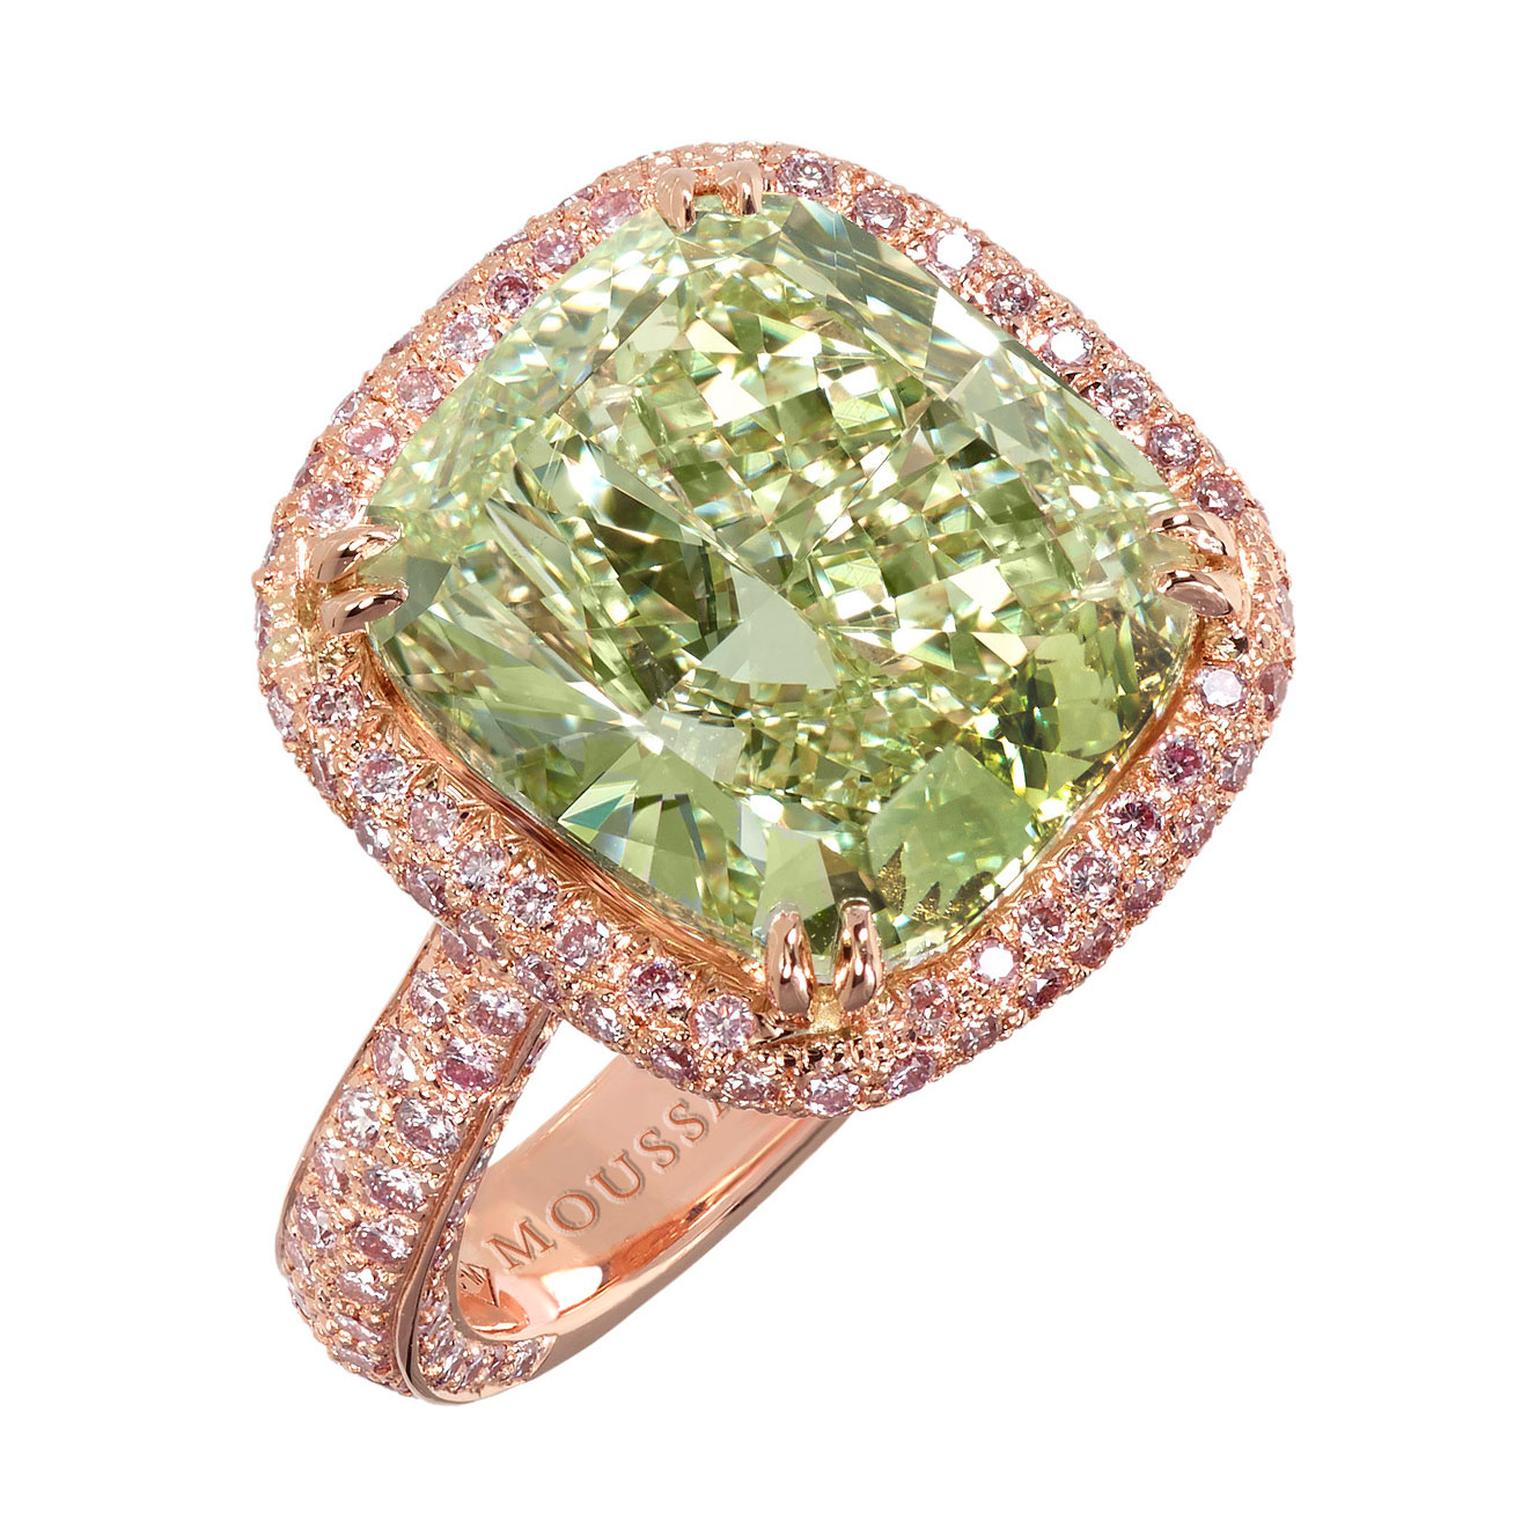 Moussaieff green diamond ring 6.51 carats